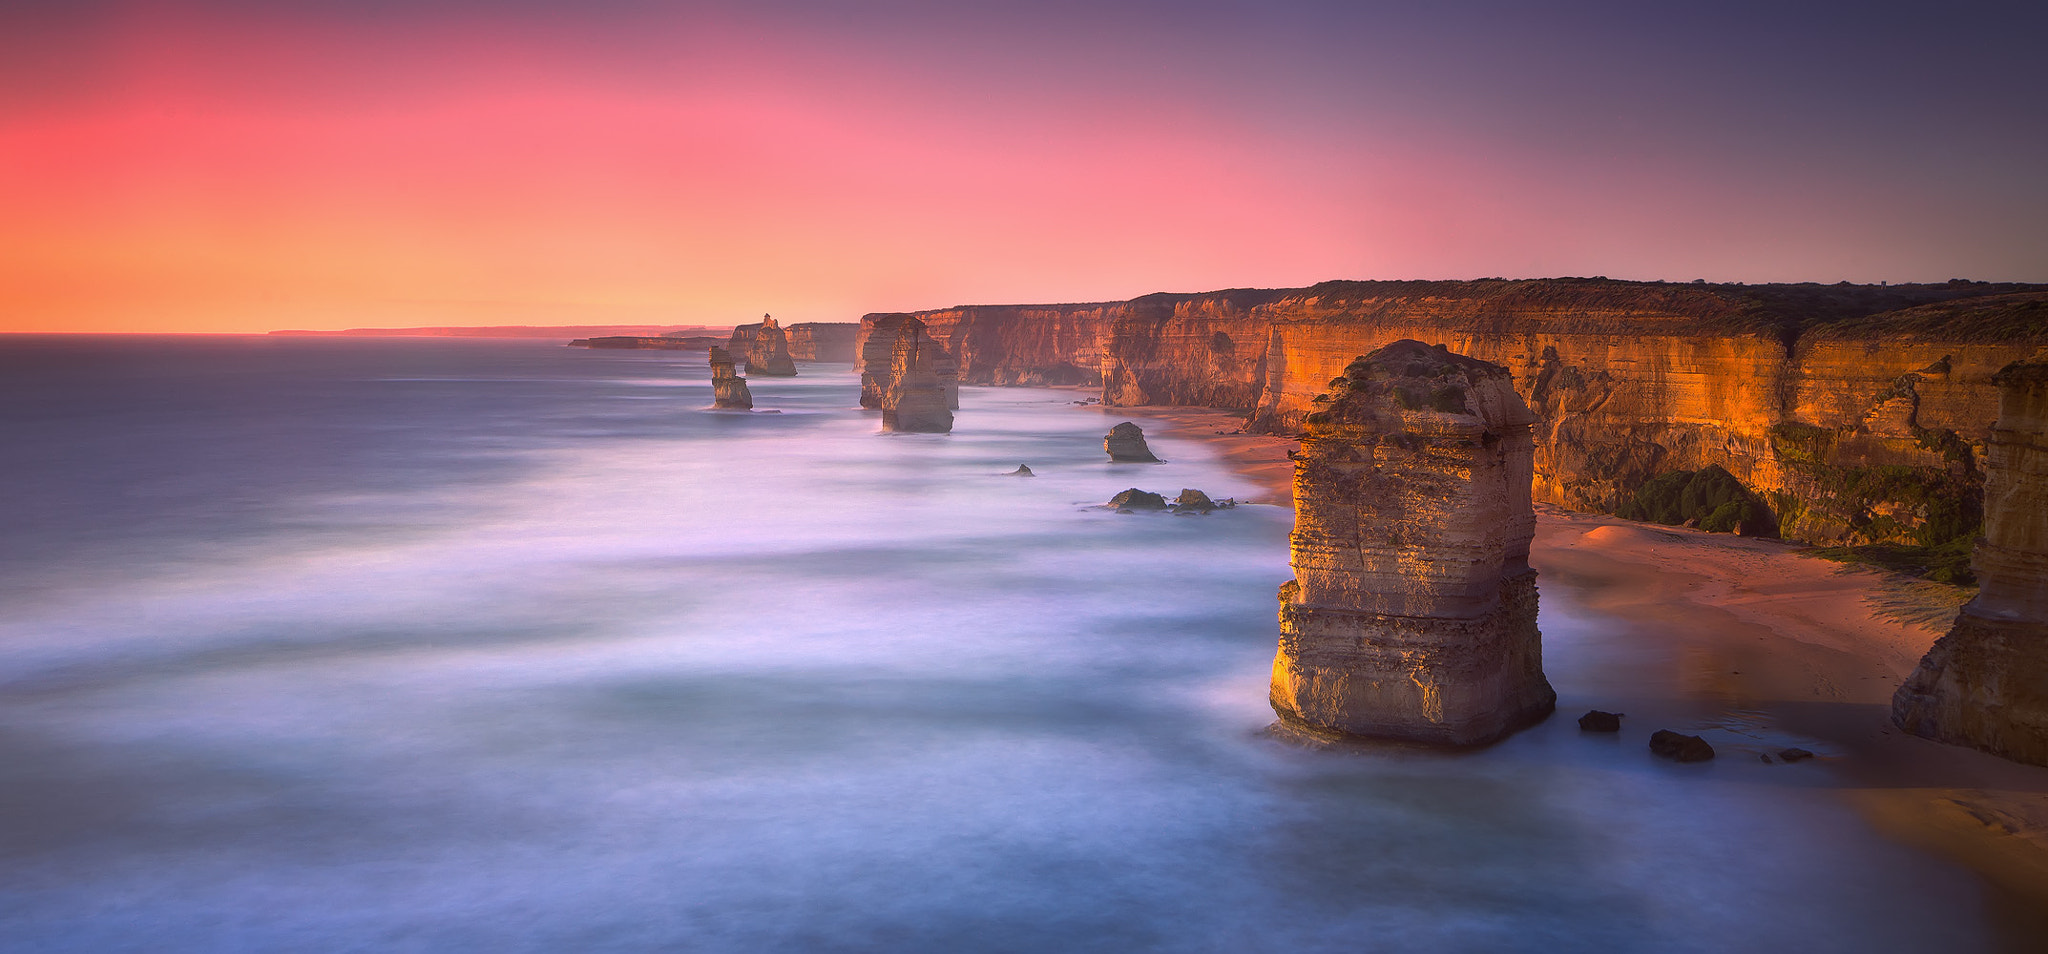 Photograph 12 Apostles by Joshua Zhang on 500px